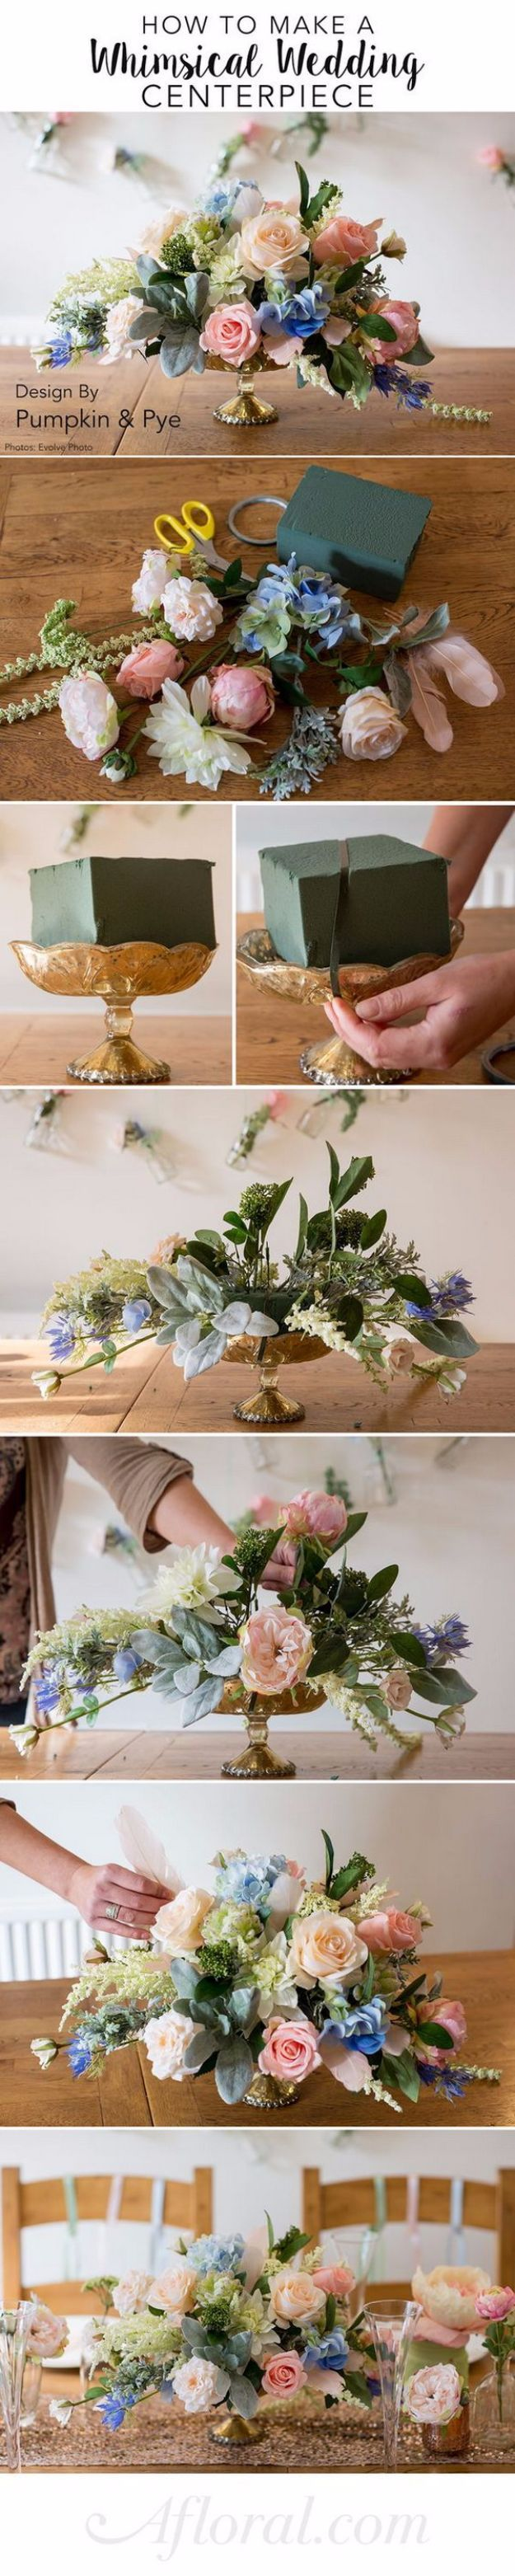 best diy wedding centerpieces you can make on a budget rustic